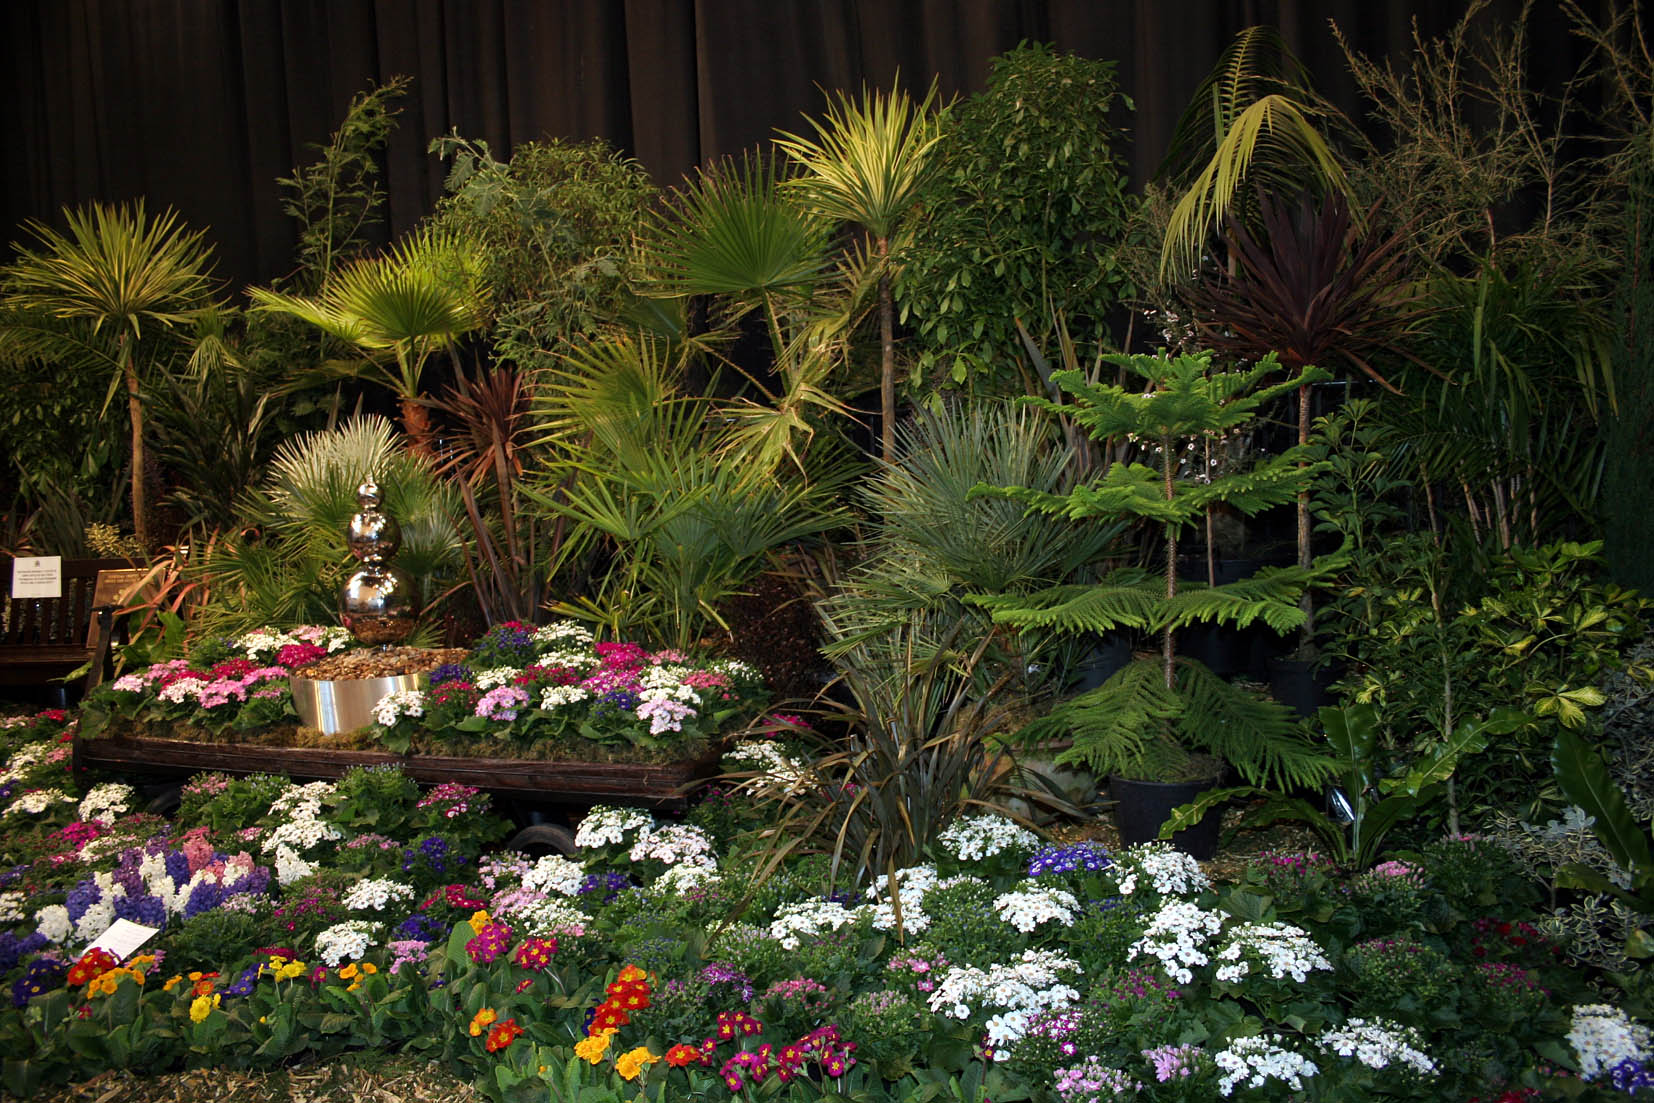 The 82nd West Cornwall Spring Show at St JohnÕs Hall Penzance. The award winning Penwith D.C. display on the main stage. Pic by CIOSP For Fletch